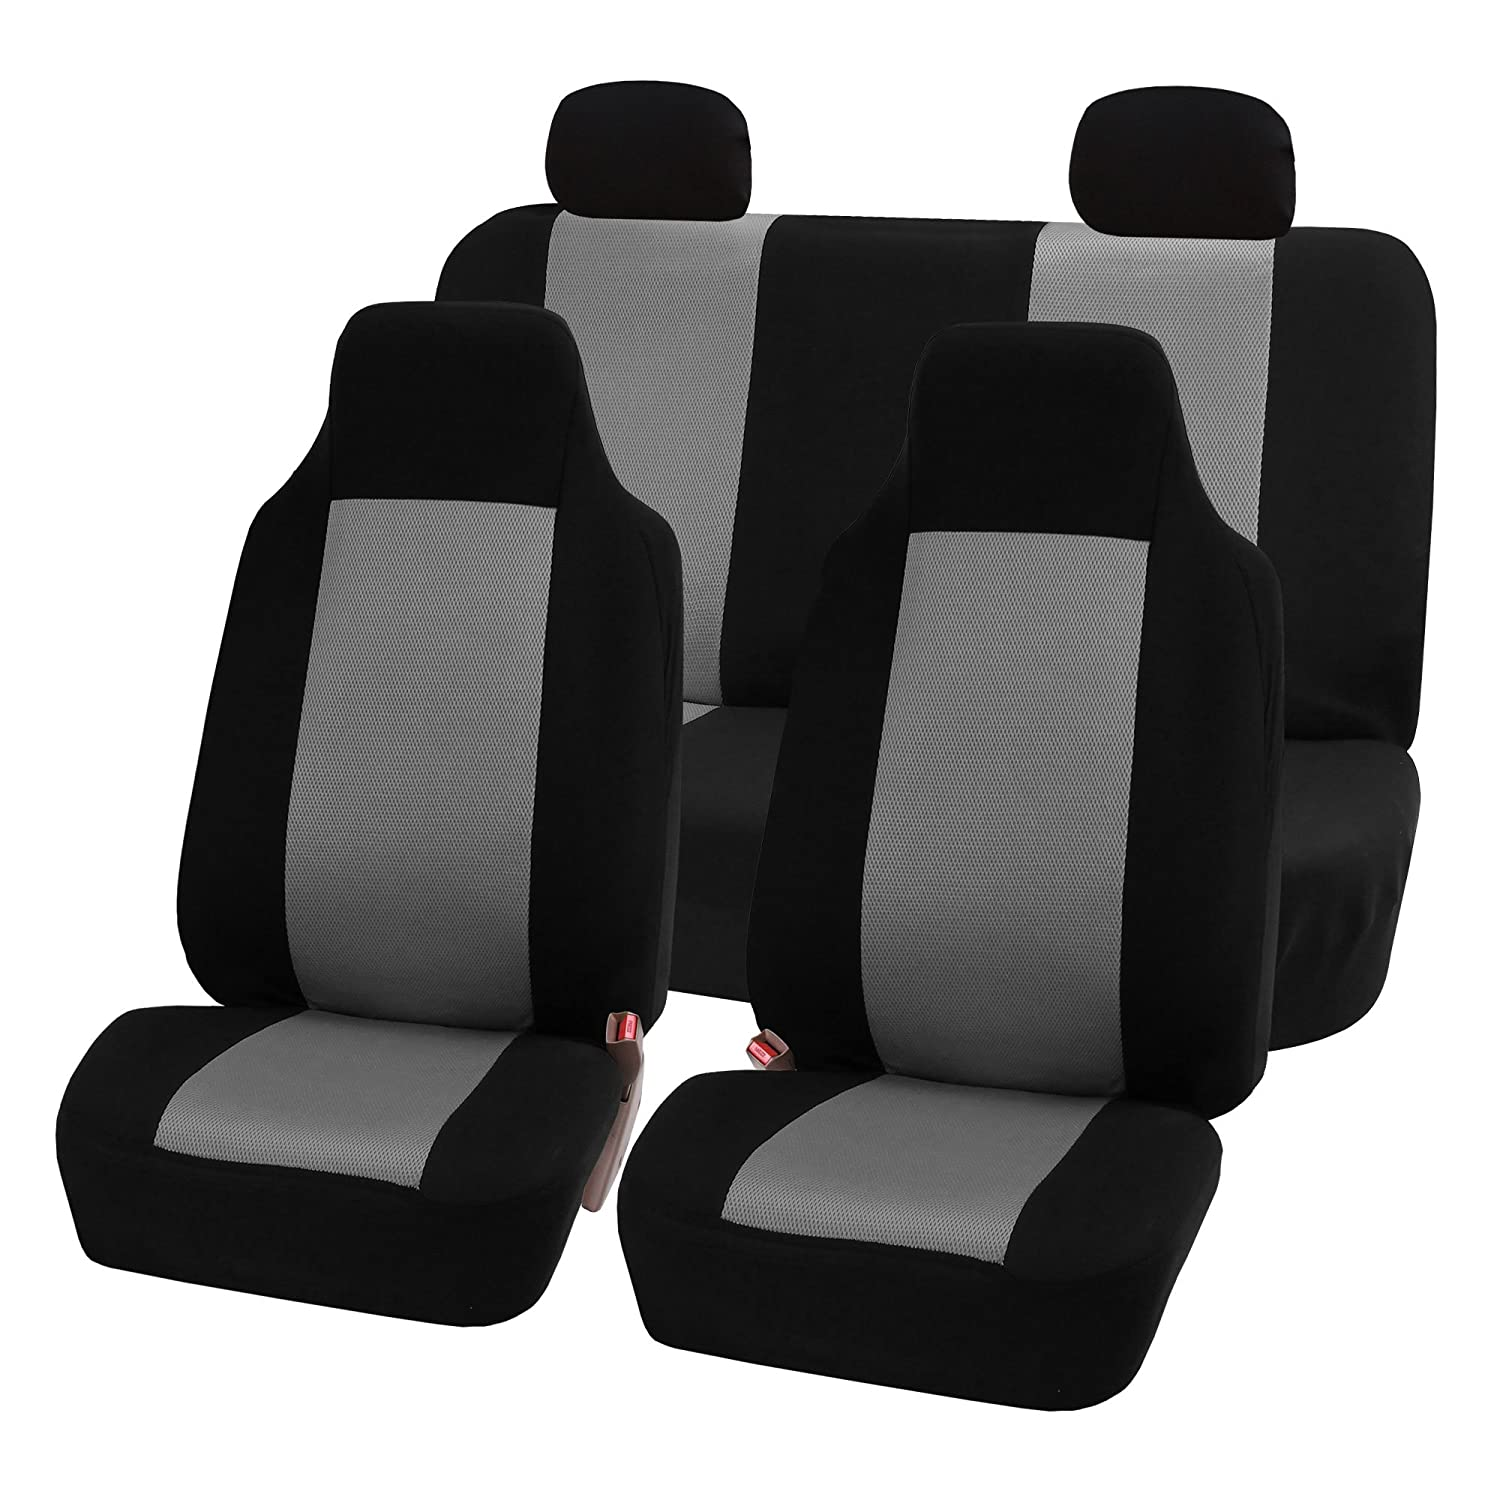 Amazon FH FB102114 Full Set Classic Cloth Car Seat Covers Gray Black Color Fit Most Truck Suv Or Van Automotive